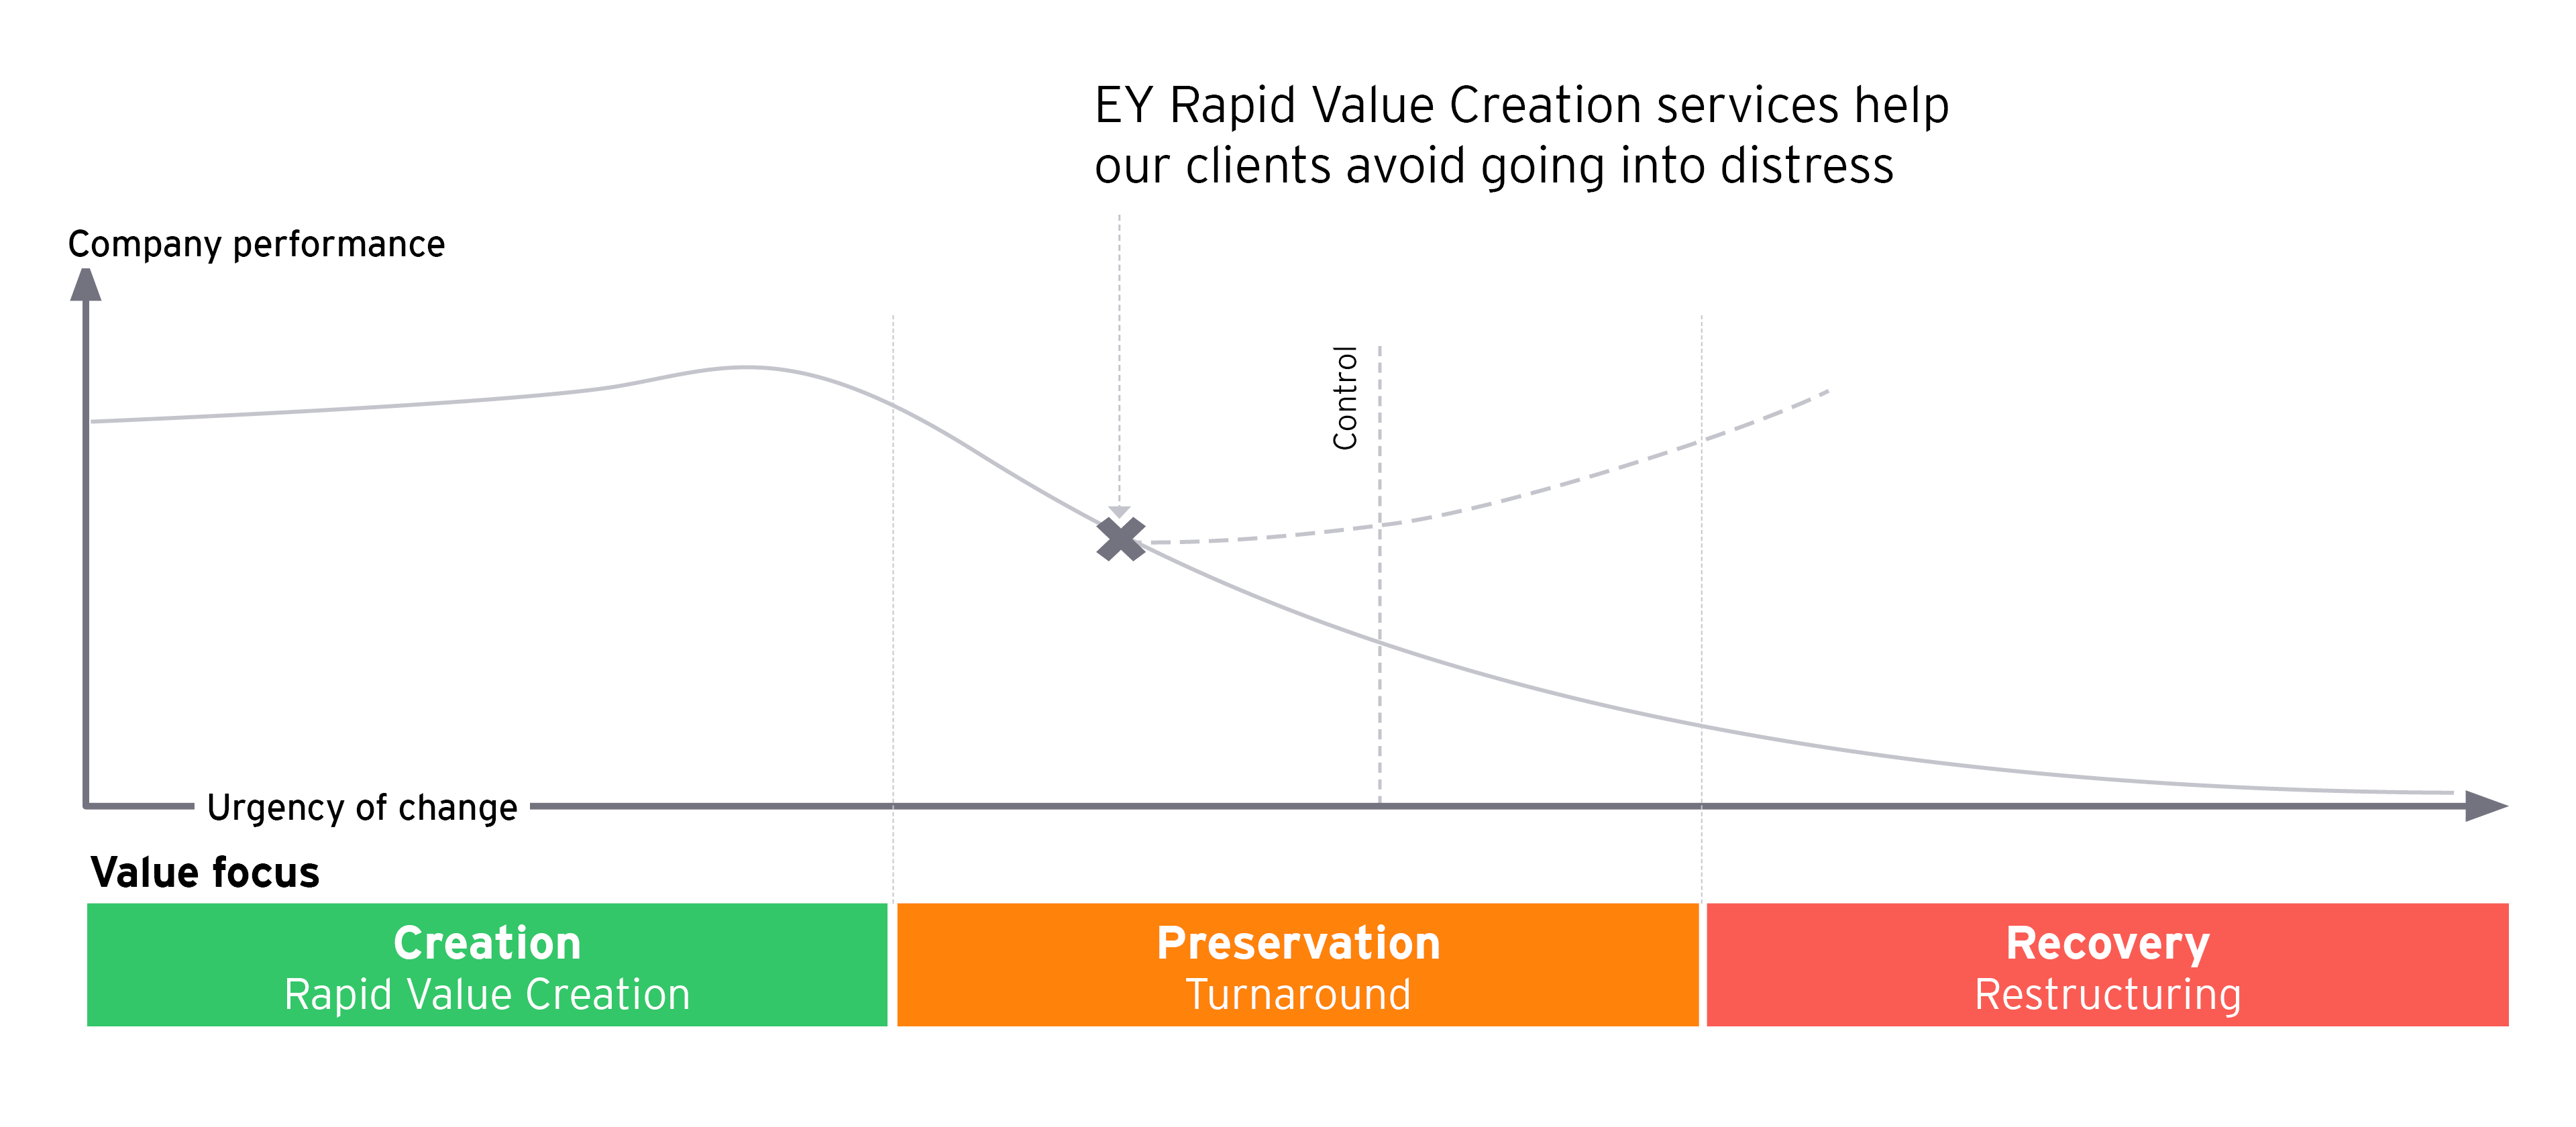 EY Rapid Value Creation